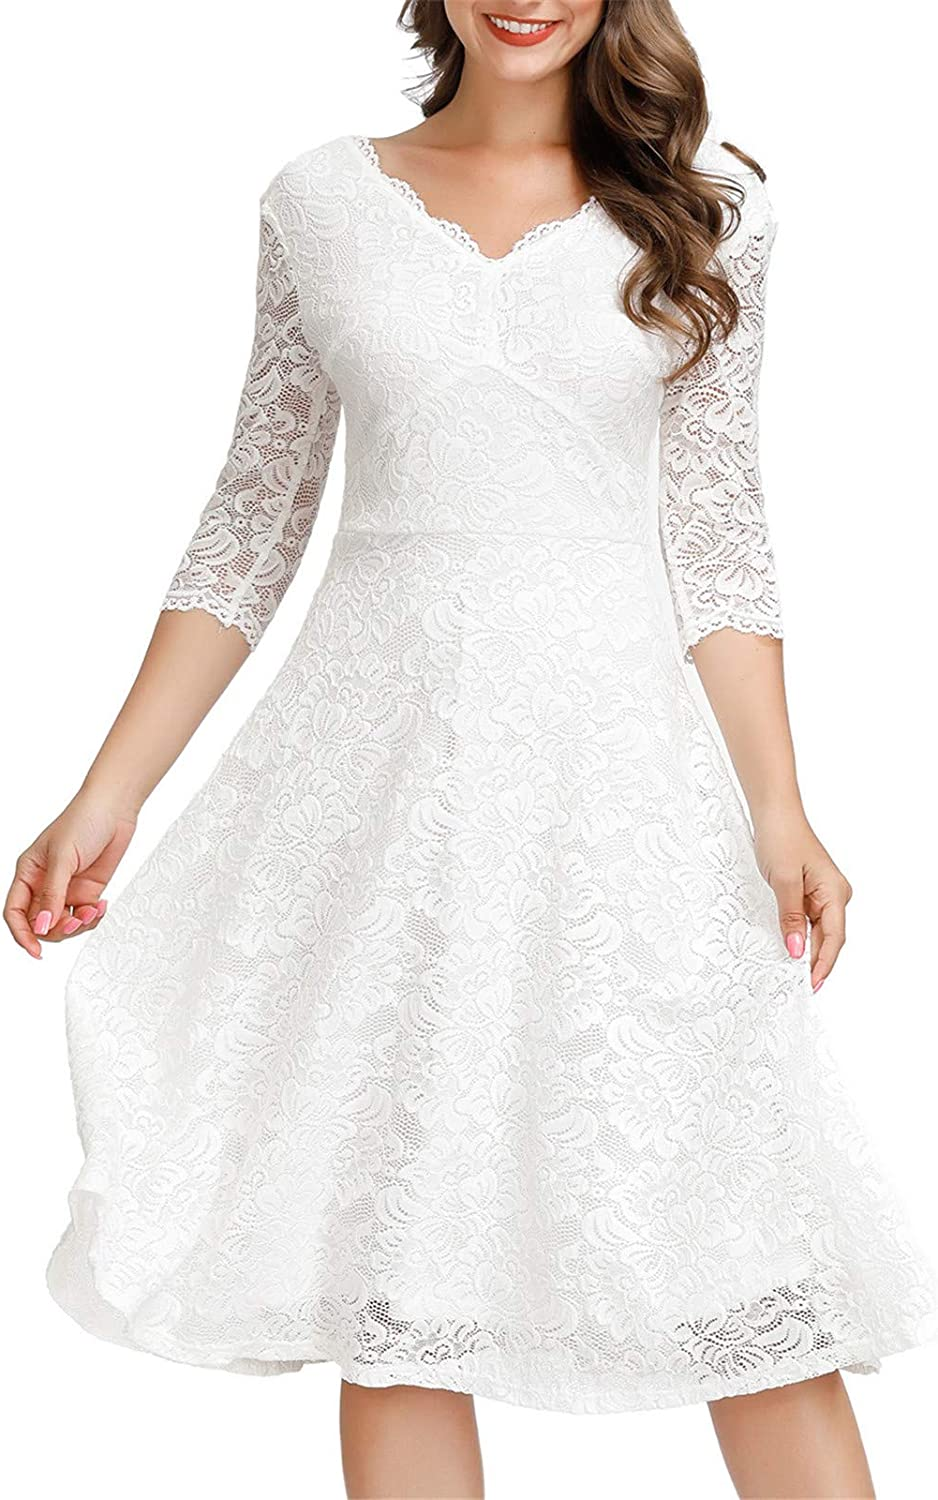 JASAMBAC Cocktail Dress for Women Vintage Wedding Guest Lace Midi Dress Party